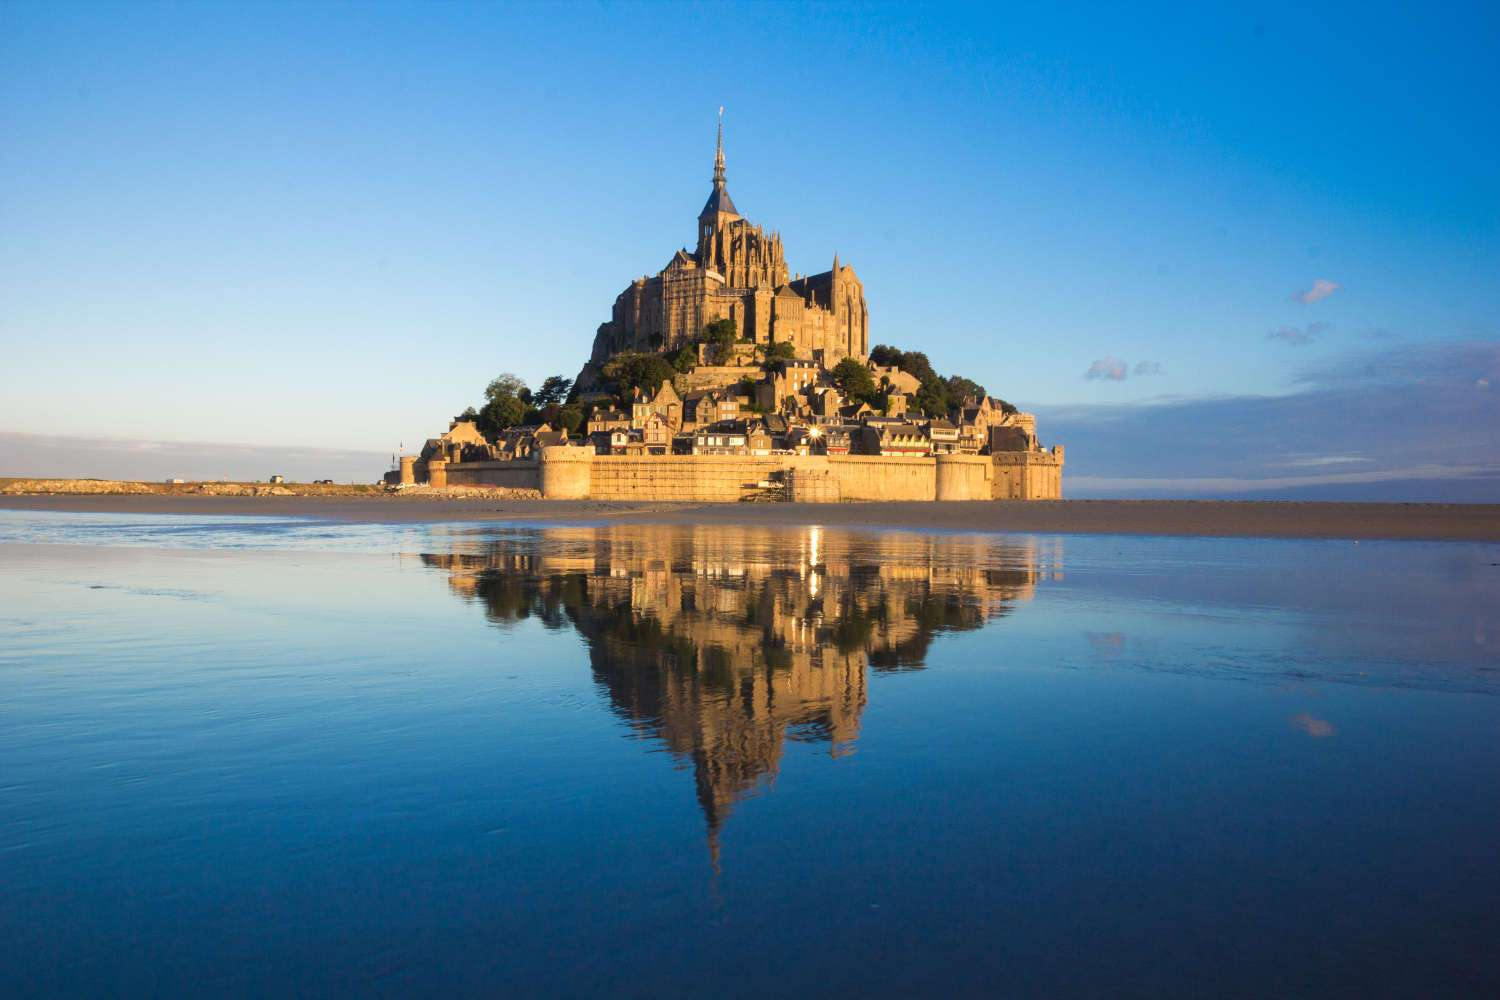 Mt. Saint Michel